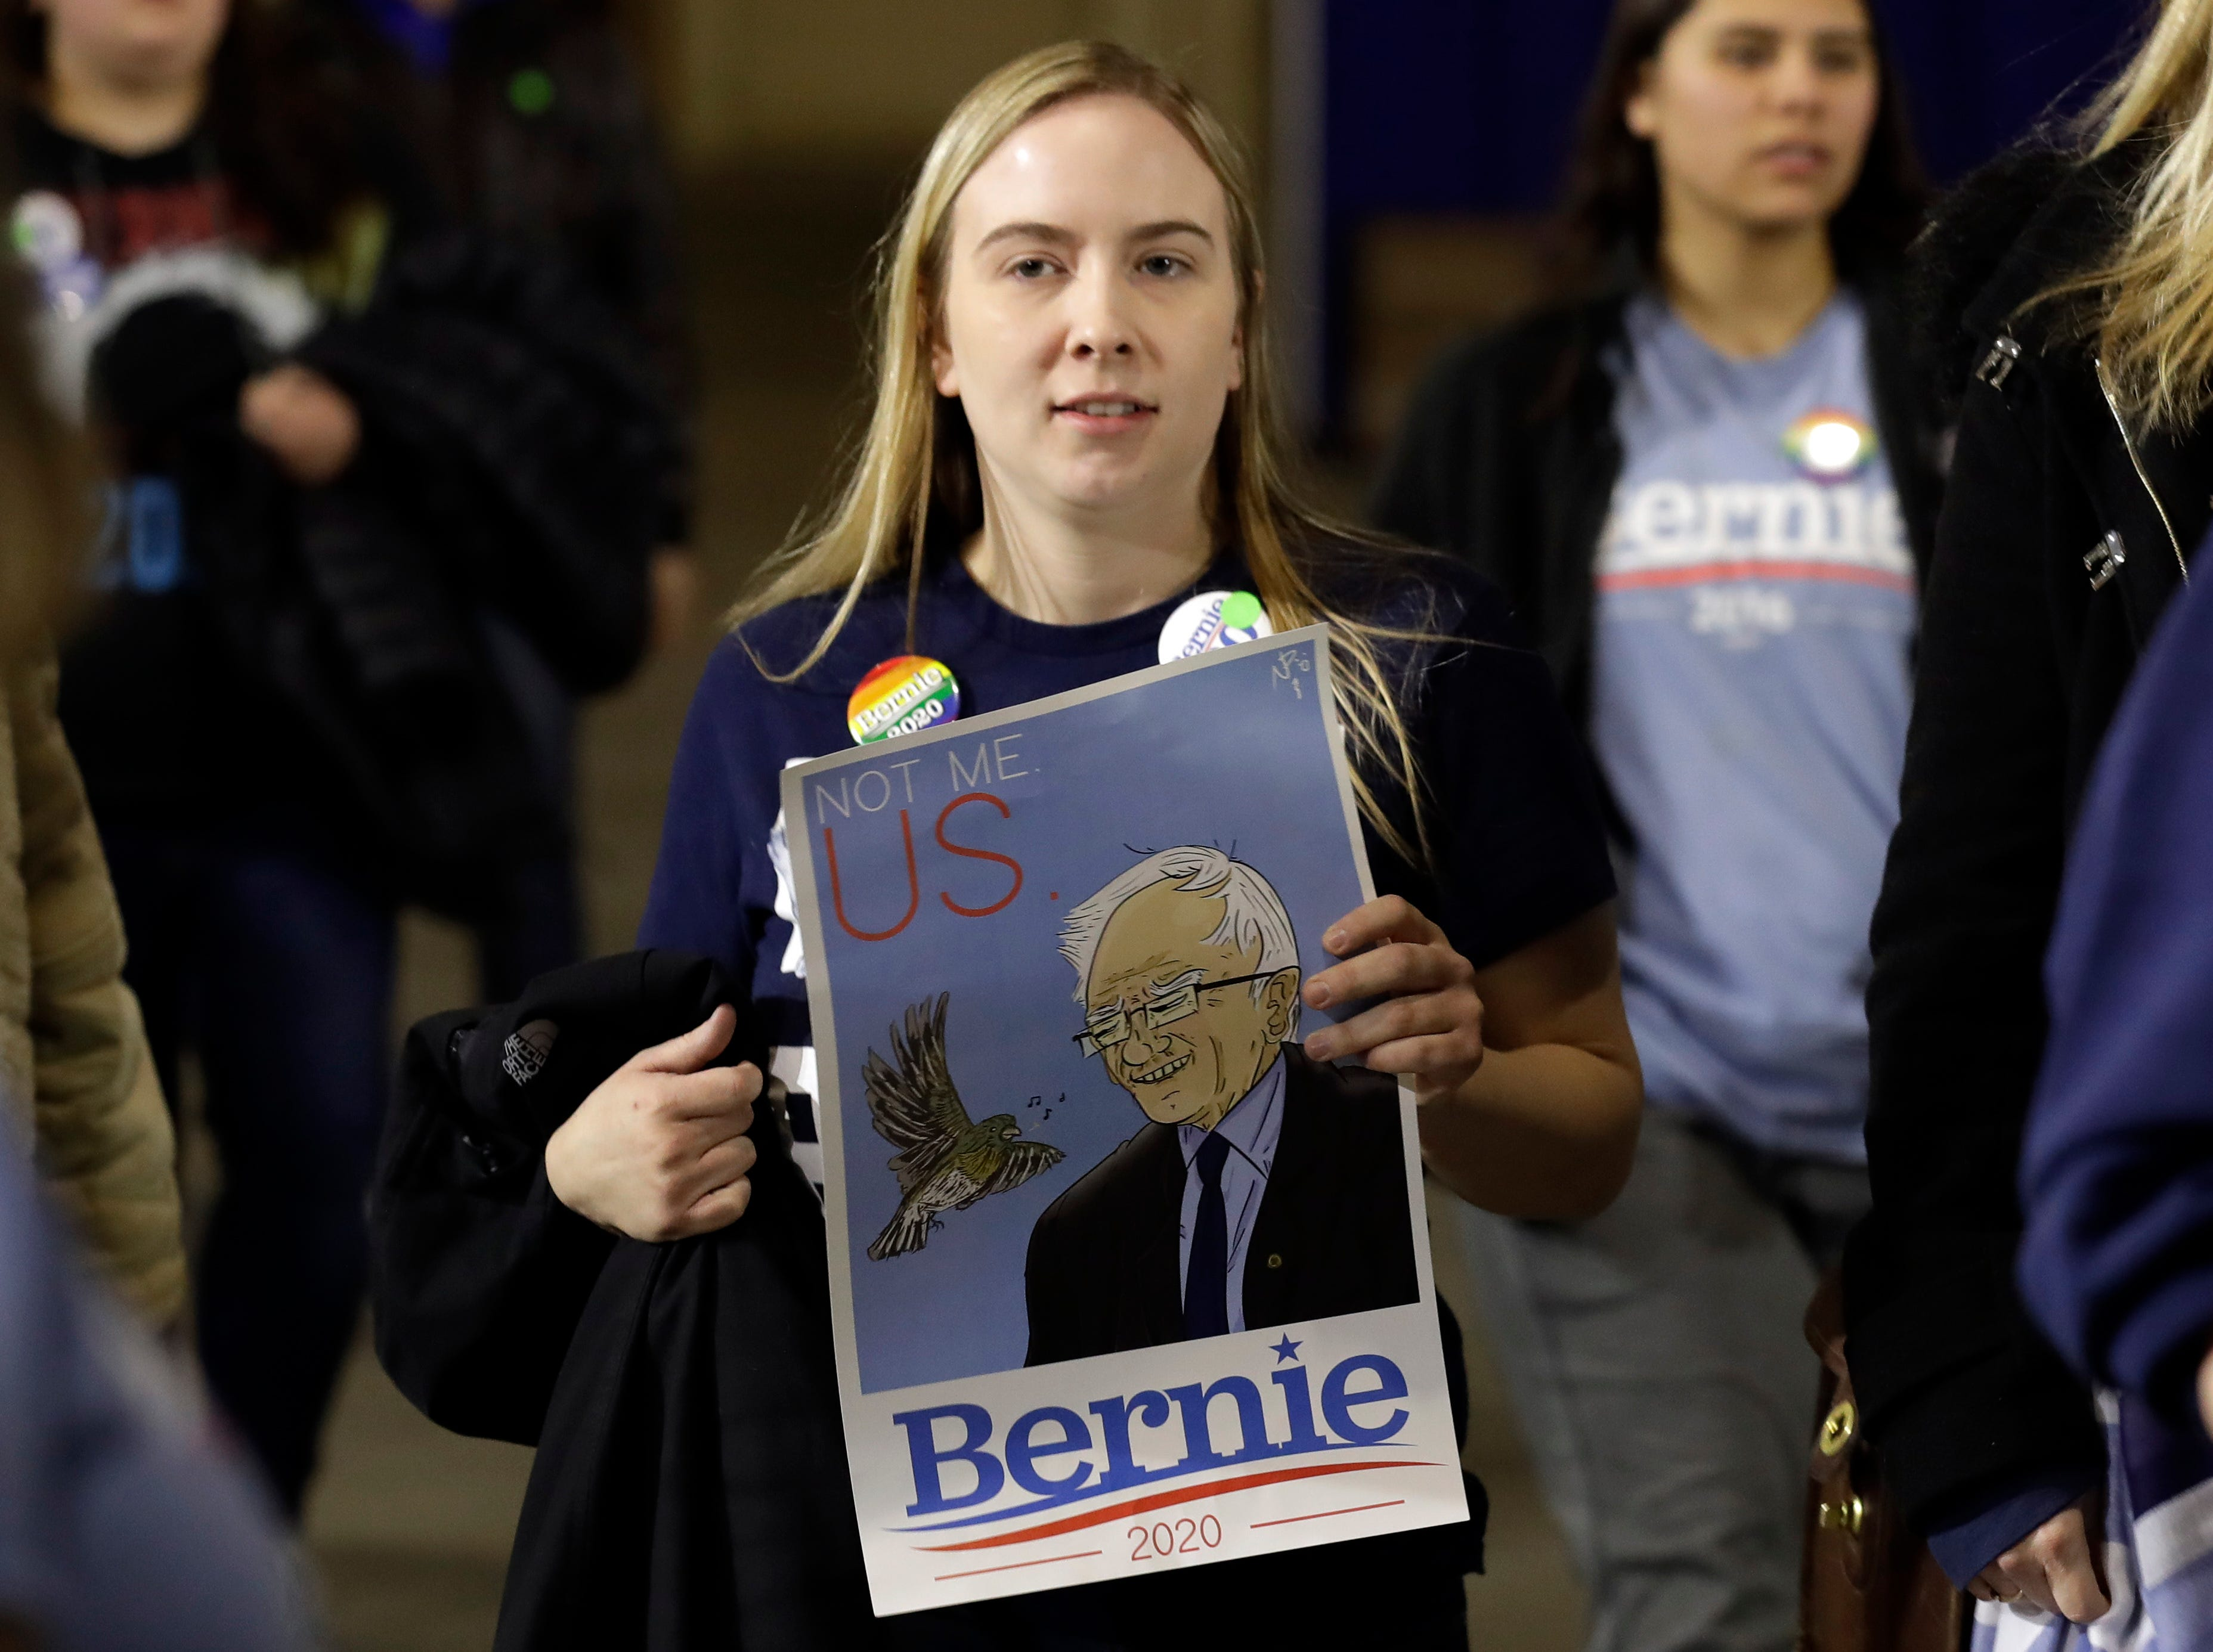 Supporters arrive for Sen. Bernie Sanders 2020 presidential campaign event at Navy Pier in Chicago, Sunday, March 3, 2019. Over the next several weeks, Sanders will travel to Iowa, New Hampshire, South Carolina, Nevada, and California. He will then return to Burlington, Vermont, for the official launch of his campaign.